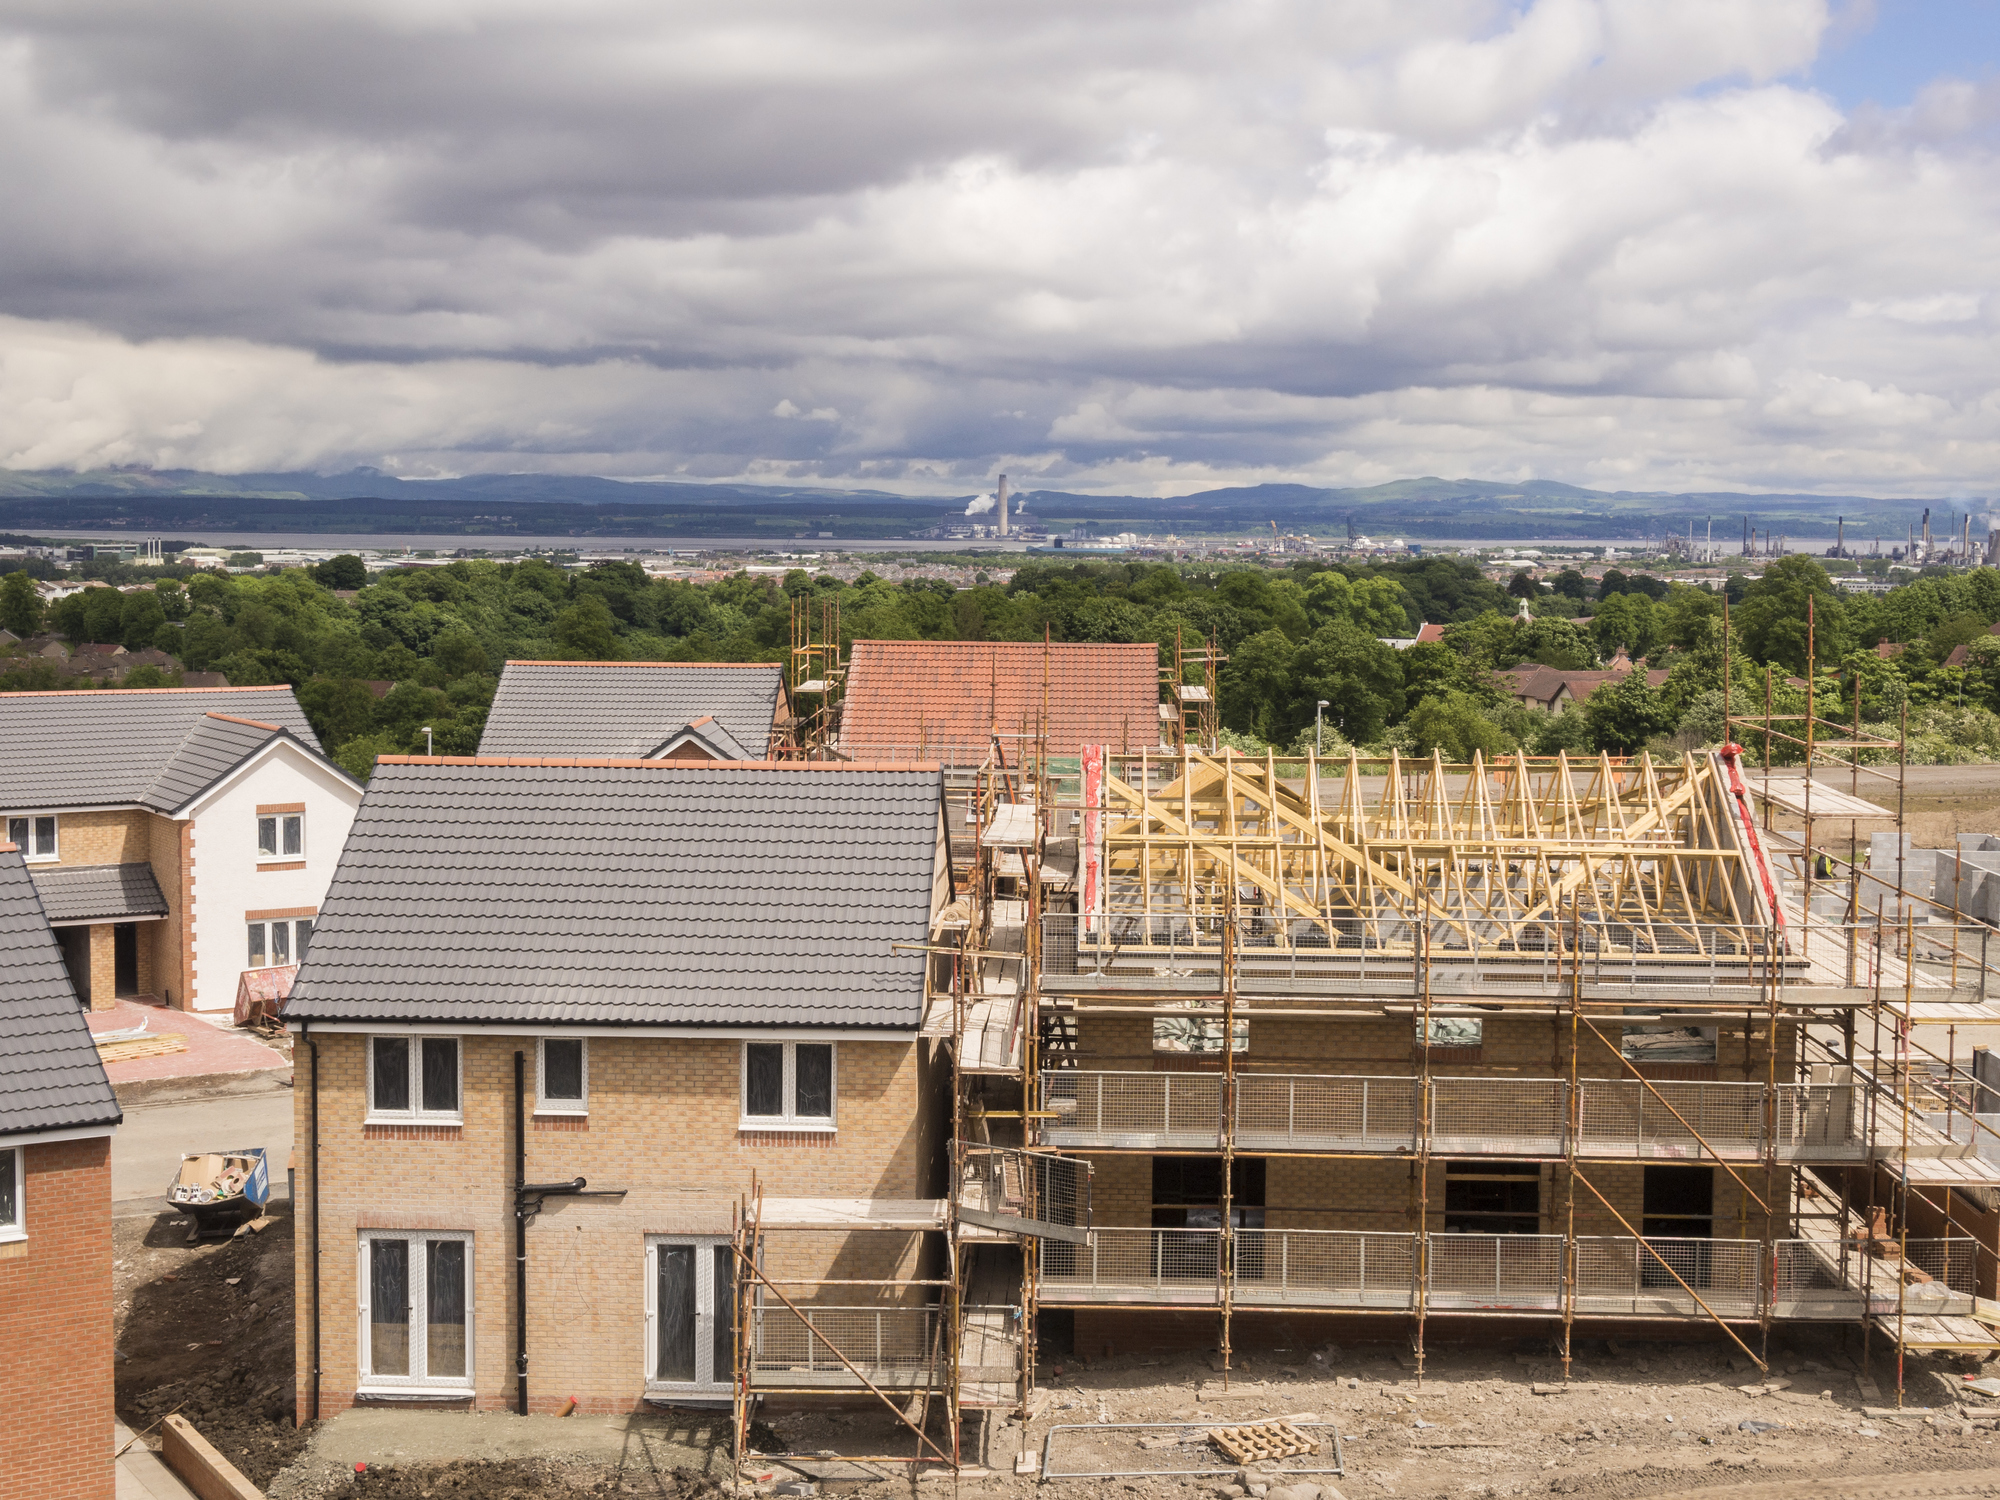 Building site of houses